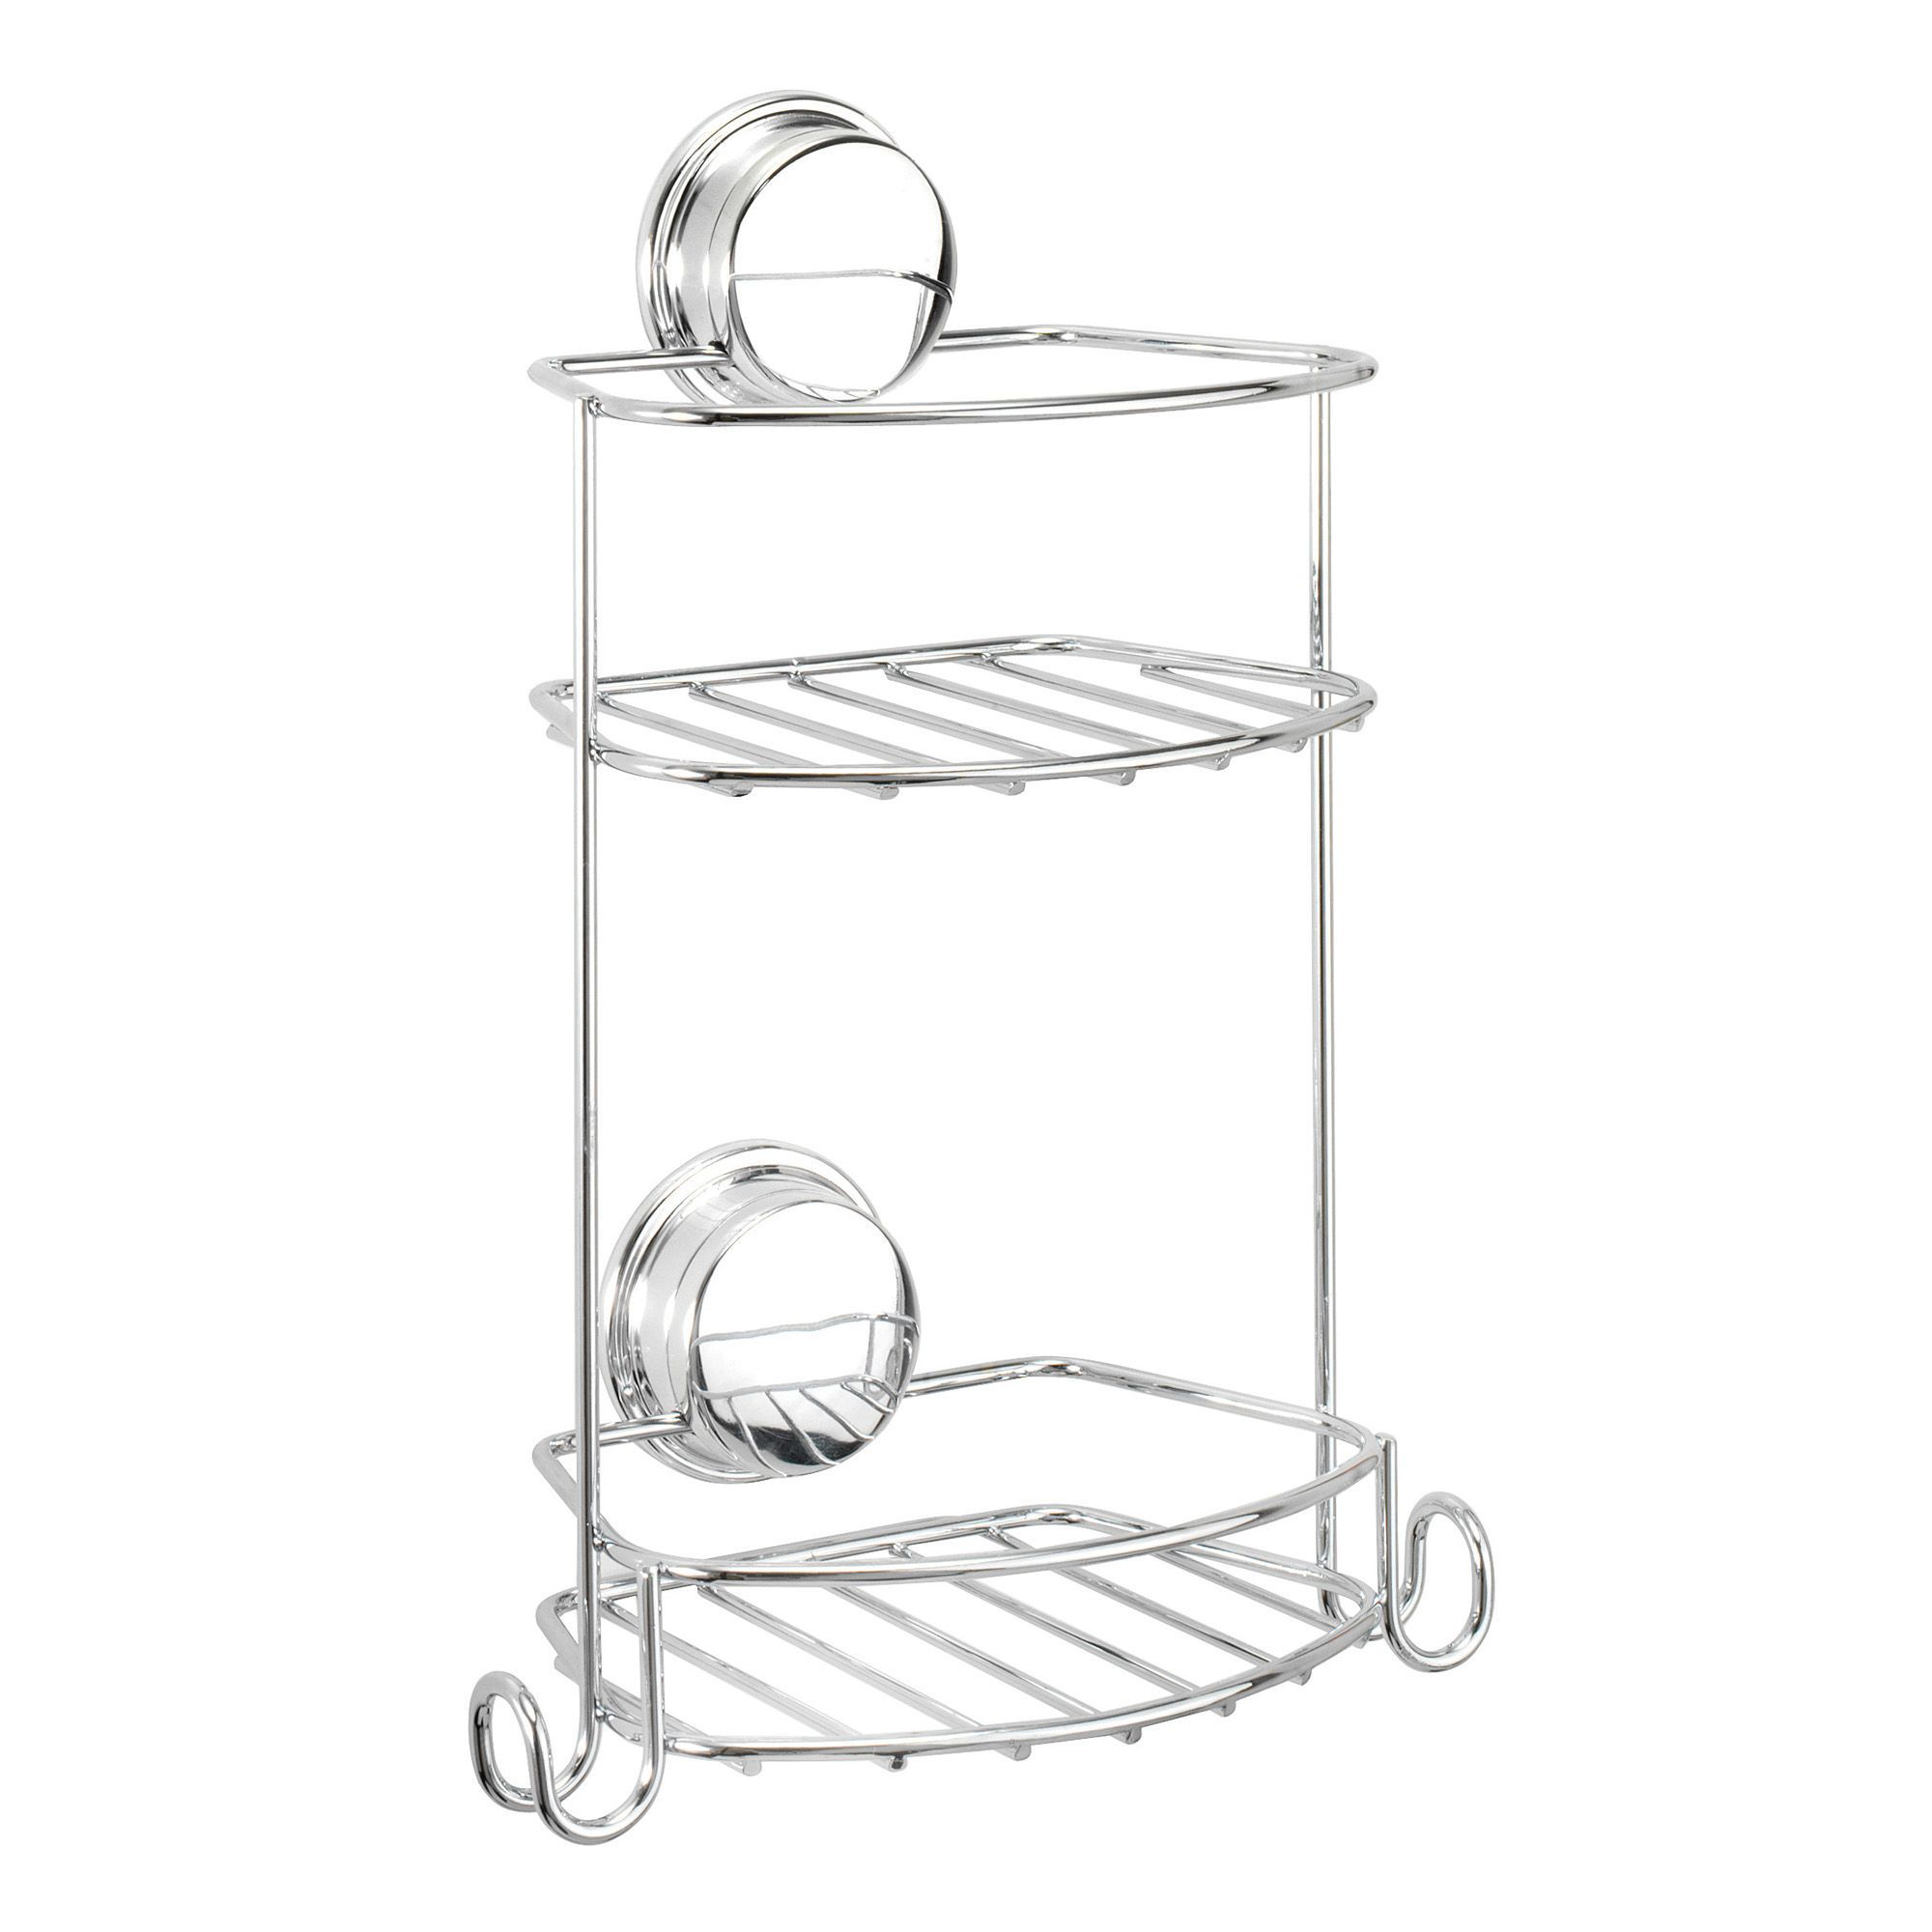 croydex stick  u0026 39 n u0026 39  lock plus chrome effect mild steel storage basket